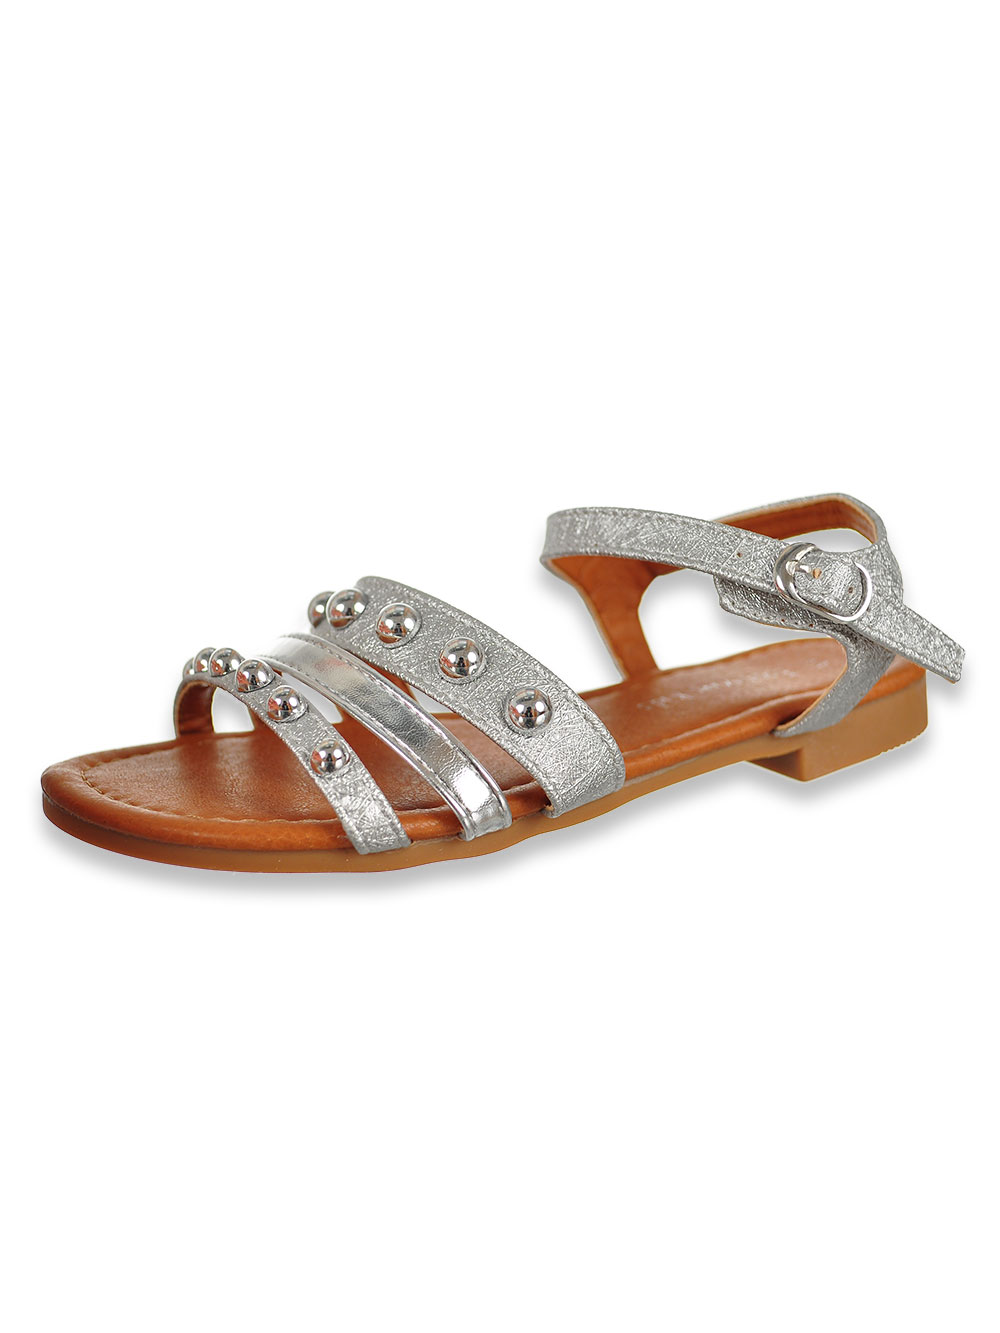 Sandals Ankle Strap